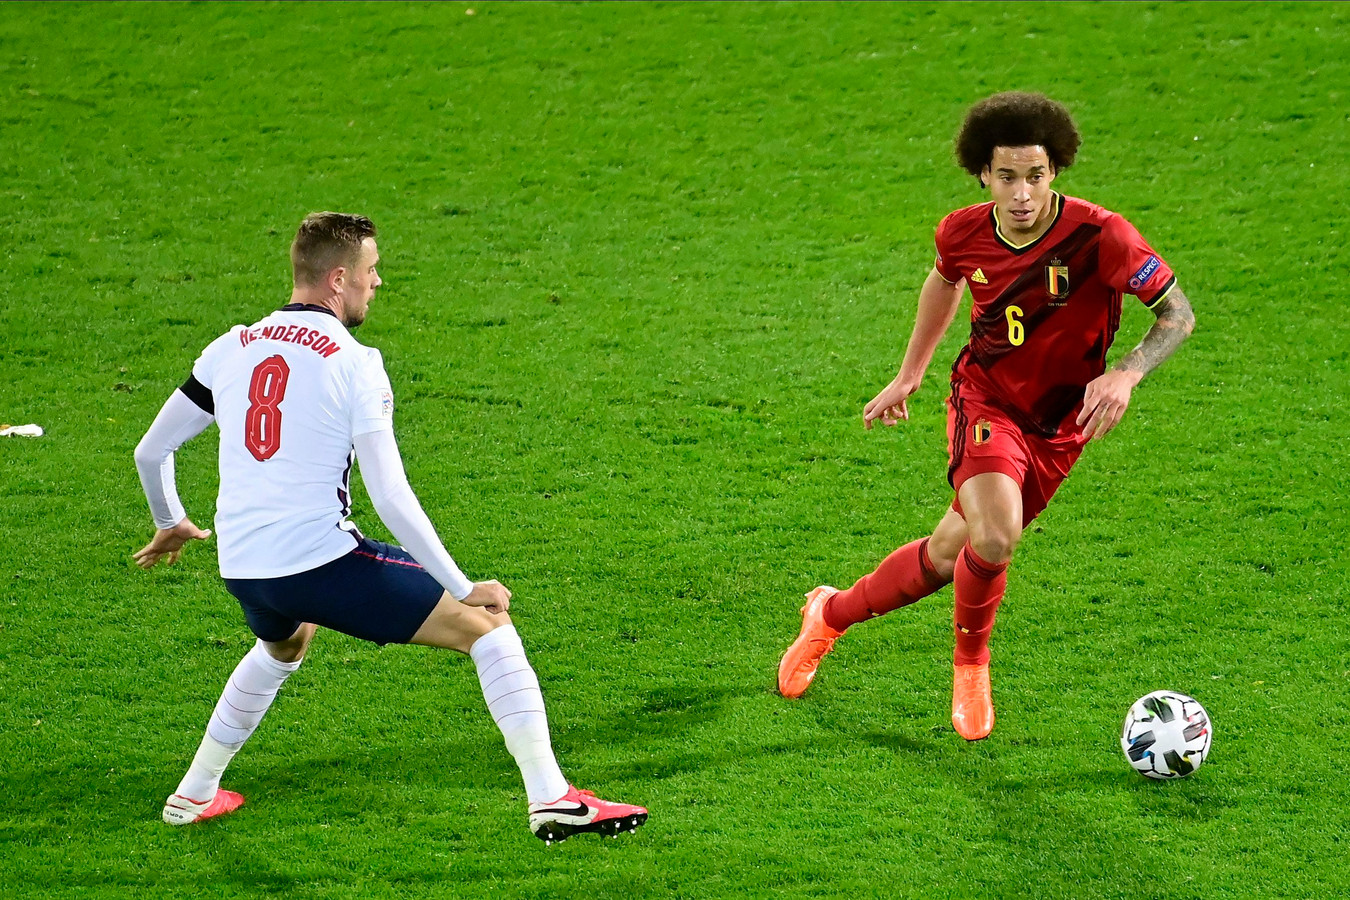 LEUVEN, BELGIUM - NOVEMBER 15 : Axel Witsel midfielder of Belgium battles for the ball with Jordan Henderson midfielder of England during the UEFA Nations League match group stage final tournament - League A - Group 2 between Belgium and England on November 15, 2020 in Leuven, Belgium, 15/11/2020 ( Photo by Peter De Voecht / Photonews